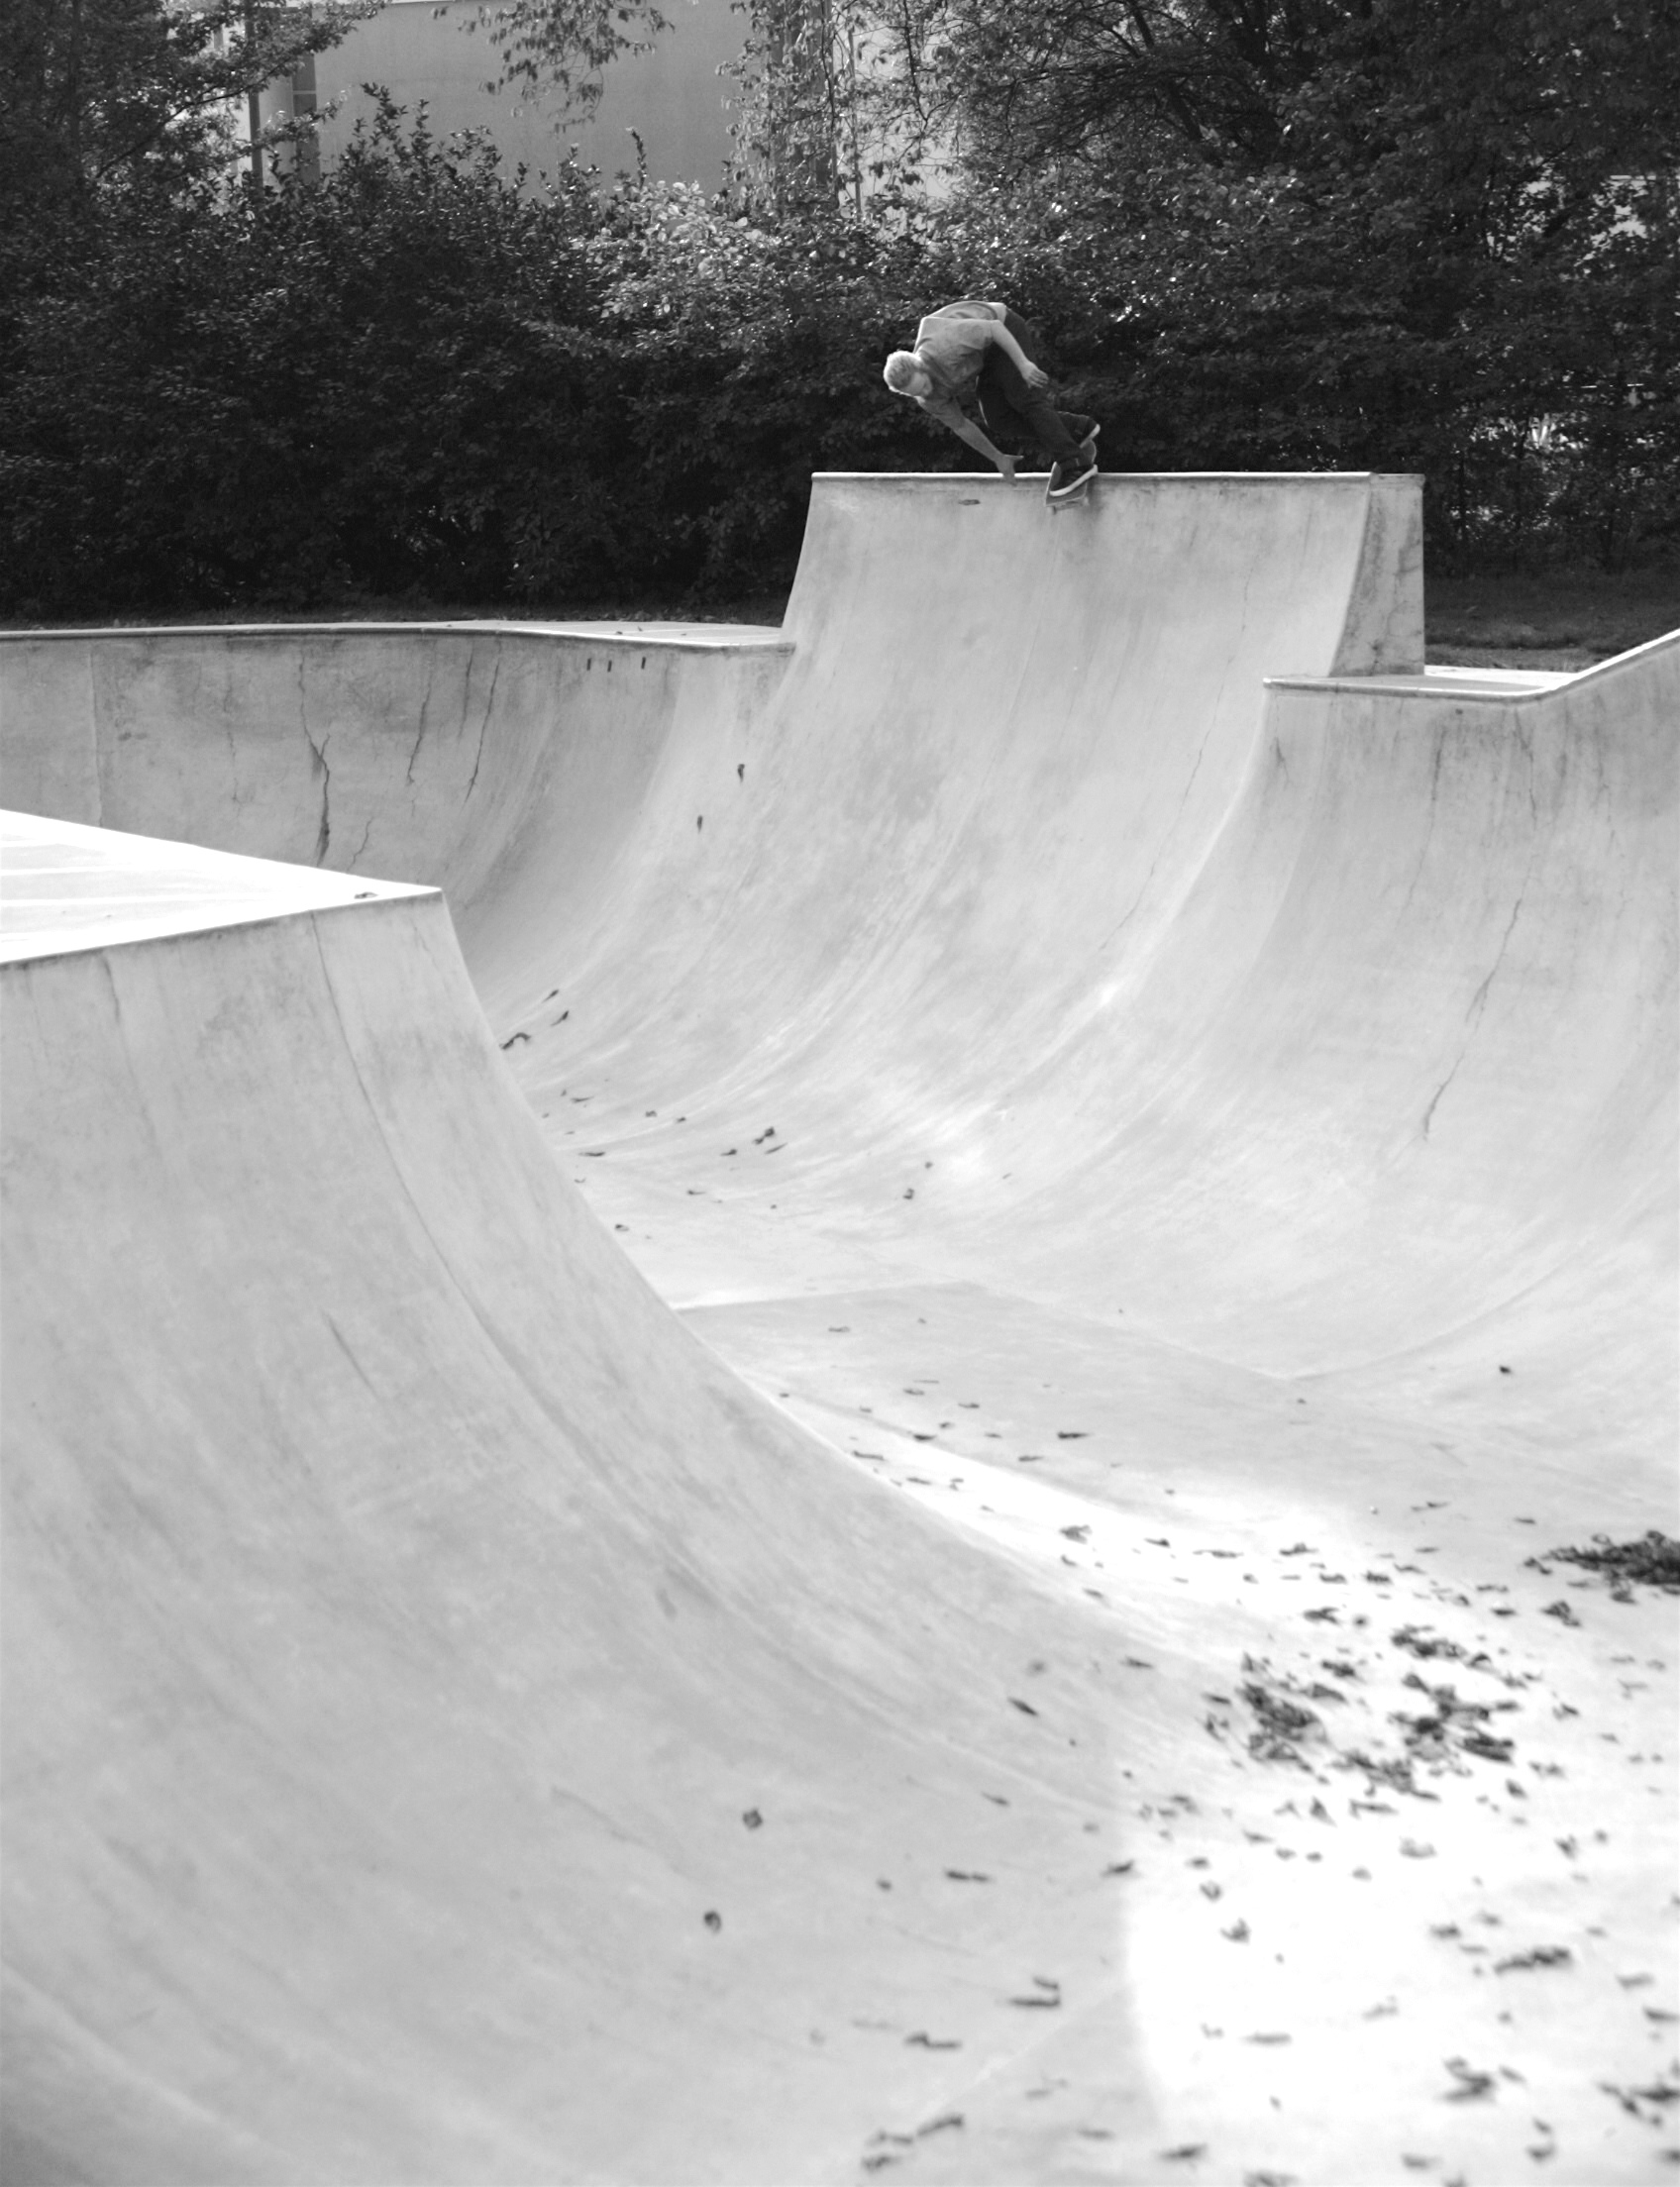 Peter Stege, Bs Smithgrind. Photo: Lars Dalby